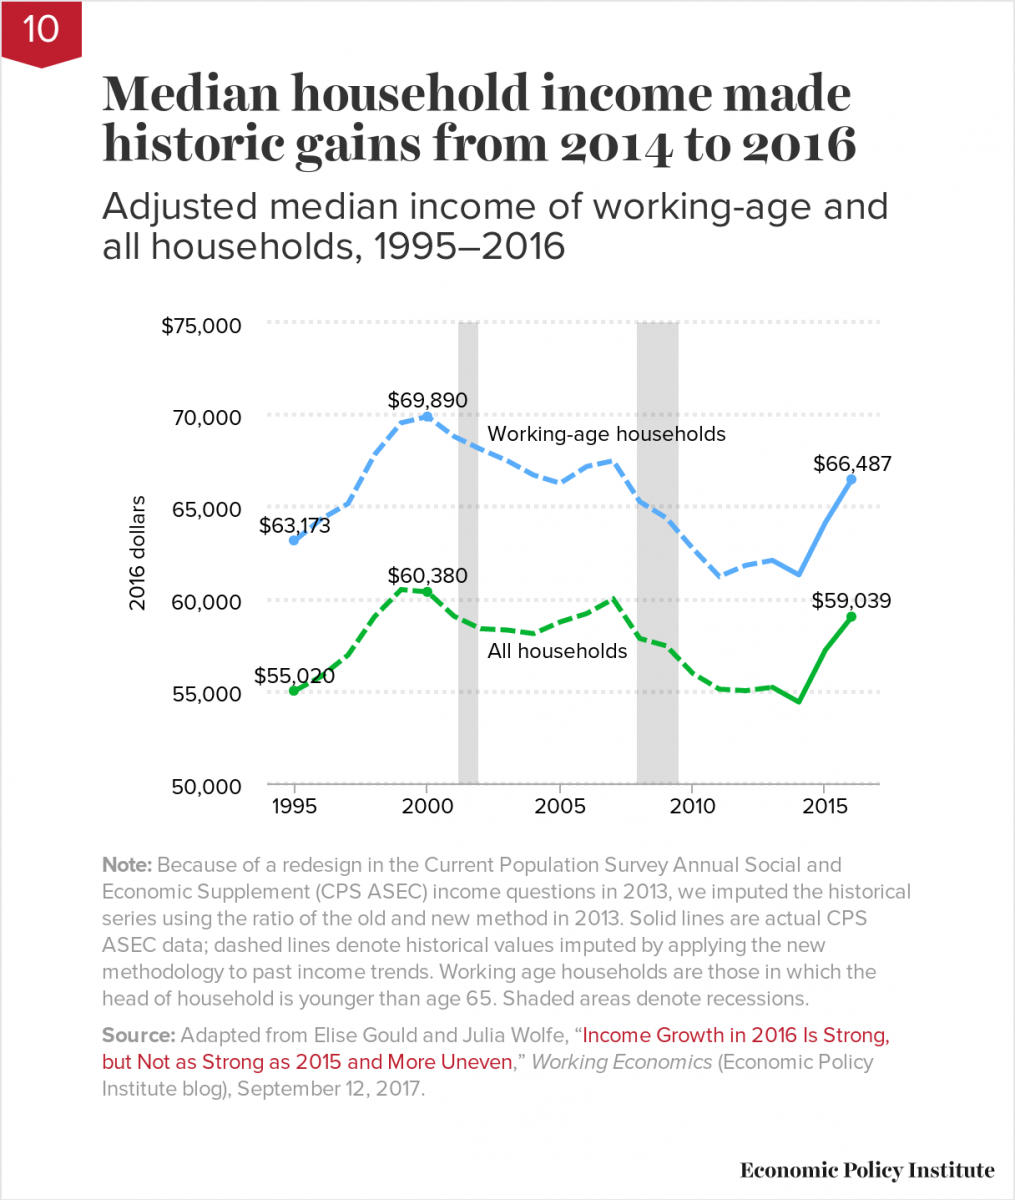 Median household income made historic gains from 2014 to 2016